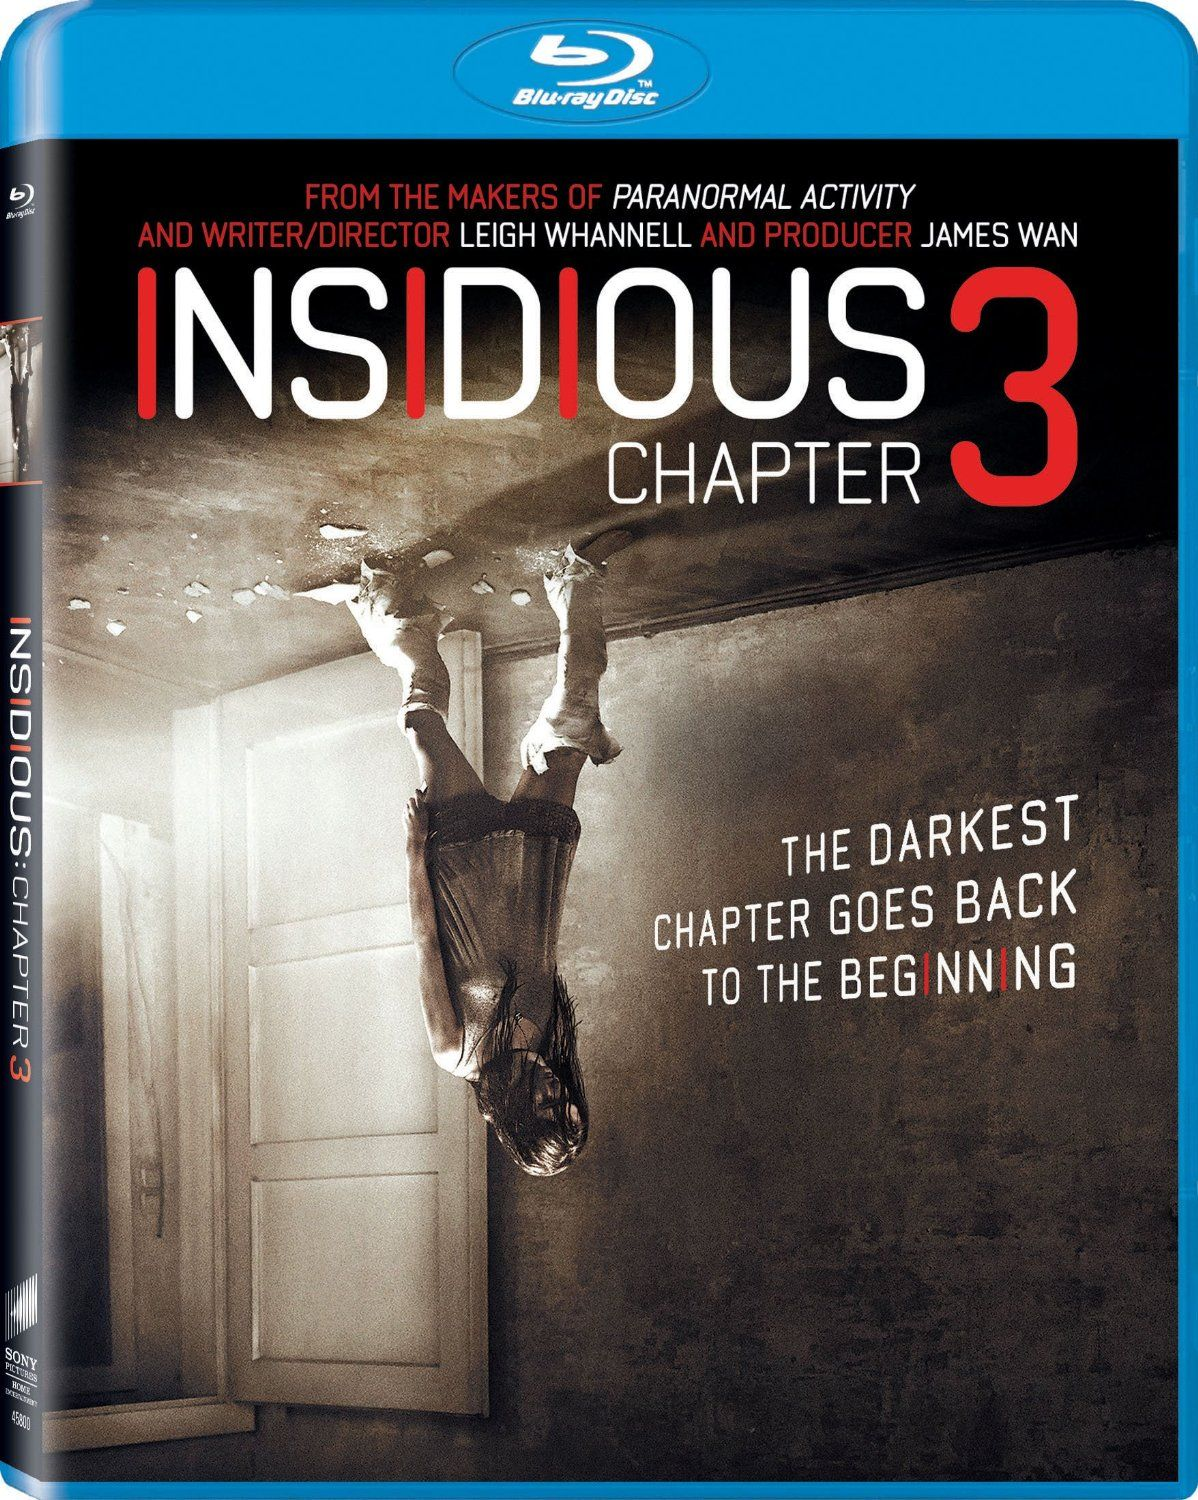 Robot Check | Insidious, Chapter 3, Best horror movies